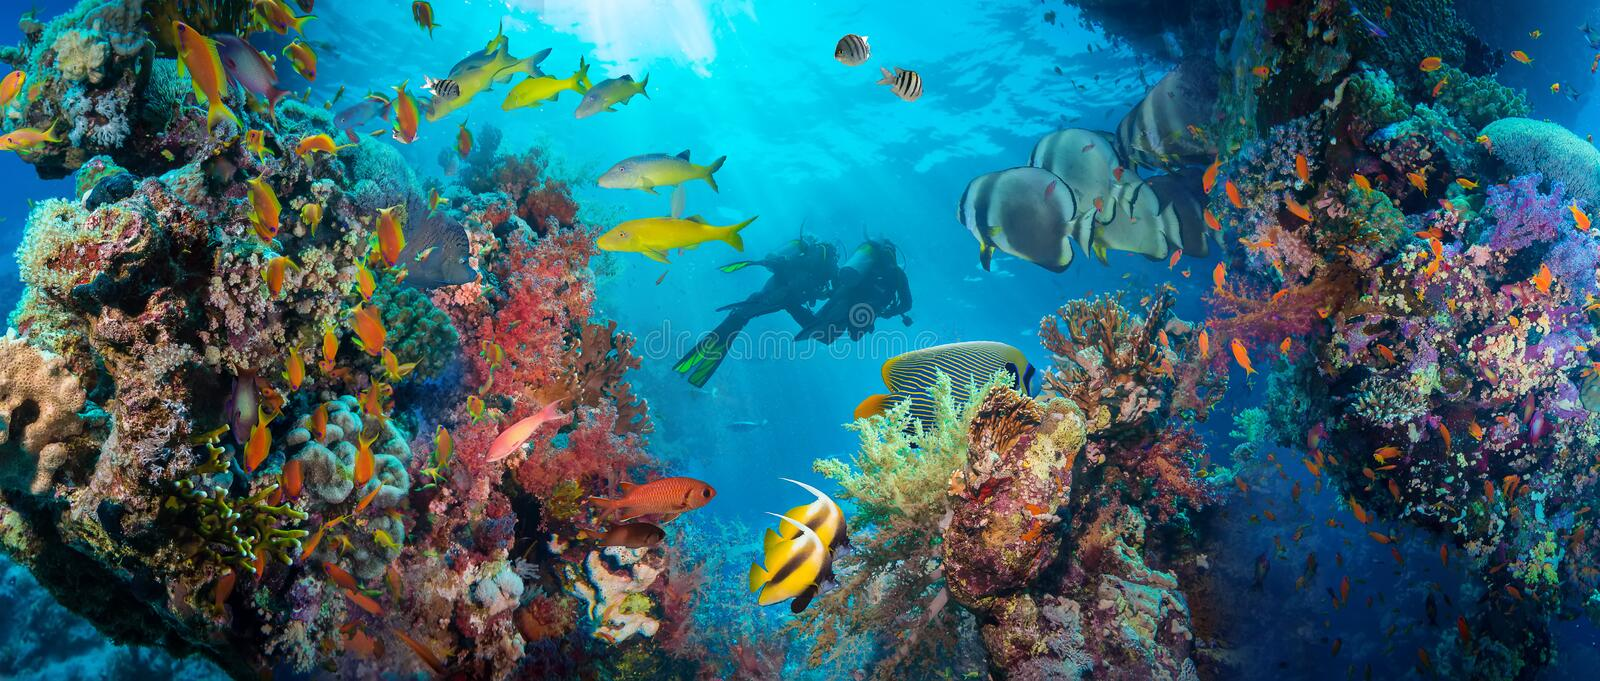 Tropical Anthias fish with net fire corals. On Red Sea reef underwater royalty free stock photo